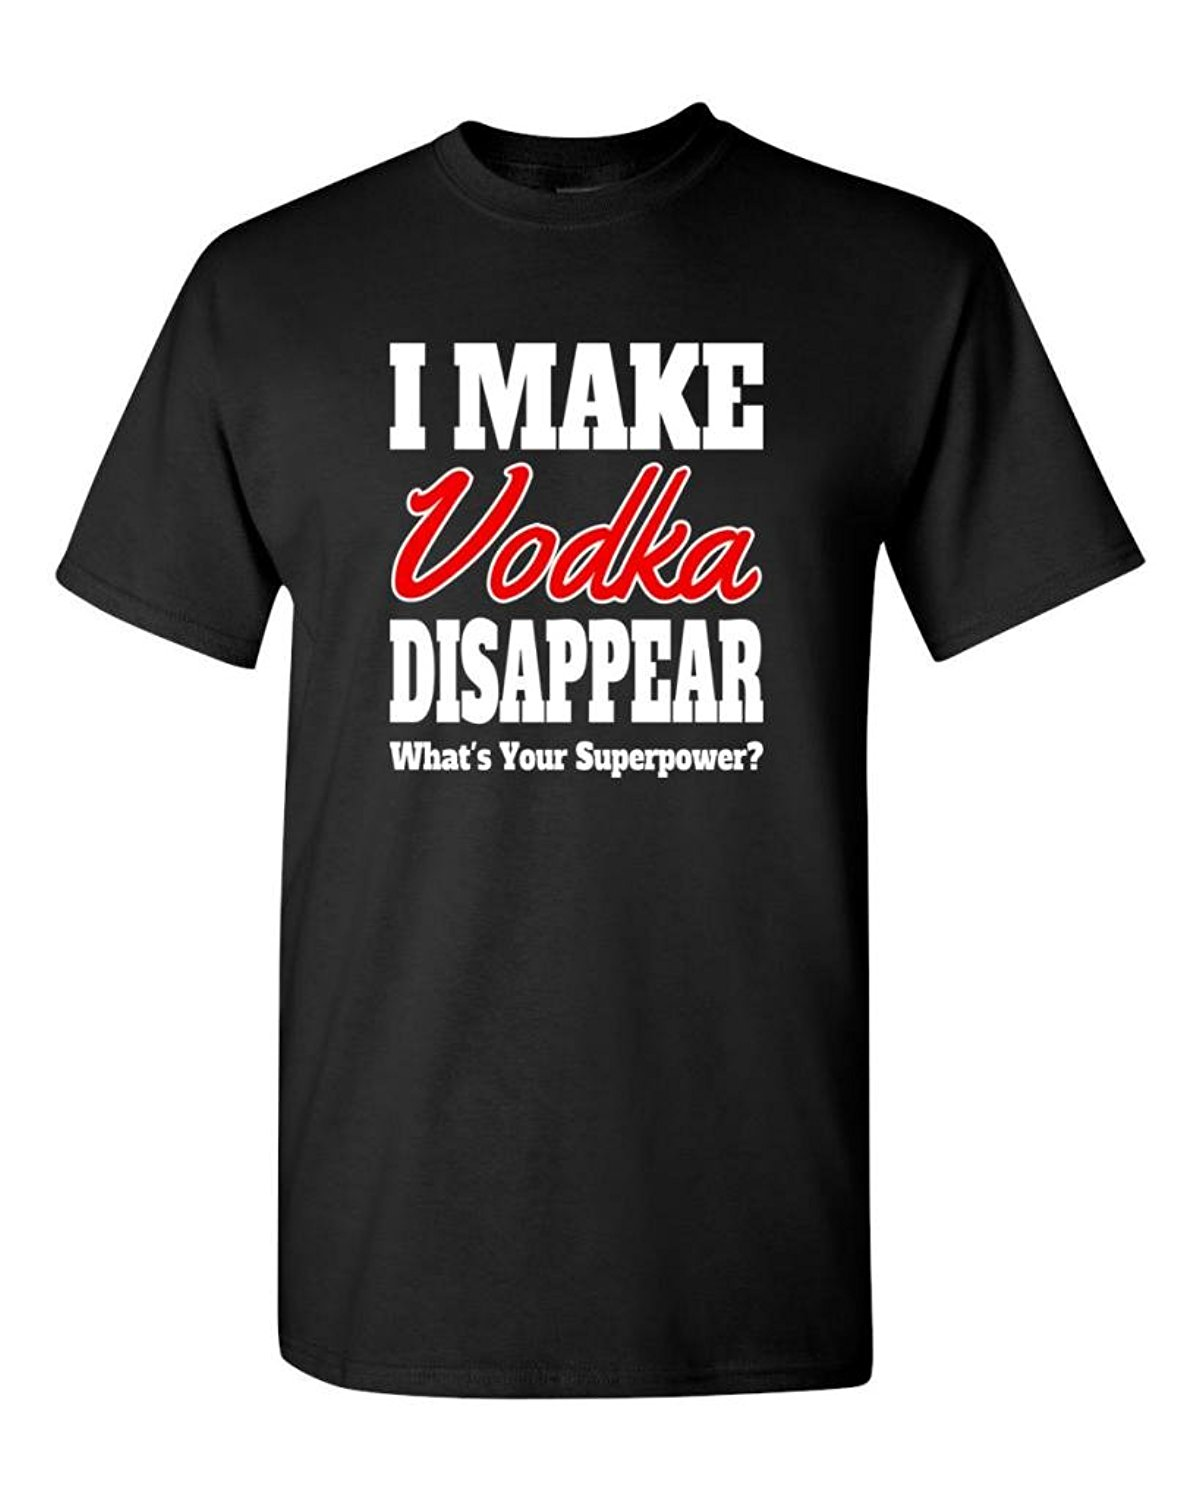 Make Vodka Disappear Funny DT Adult T-Shirt Tee